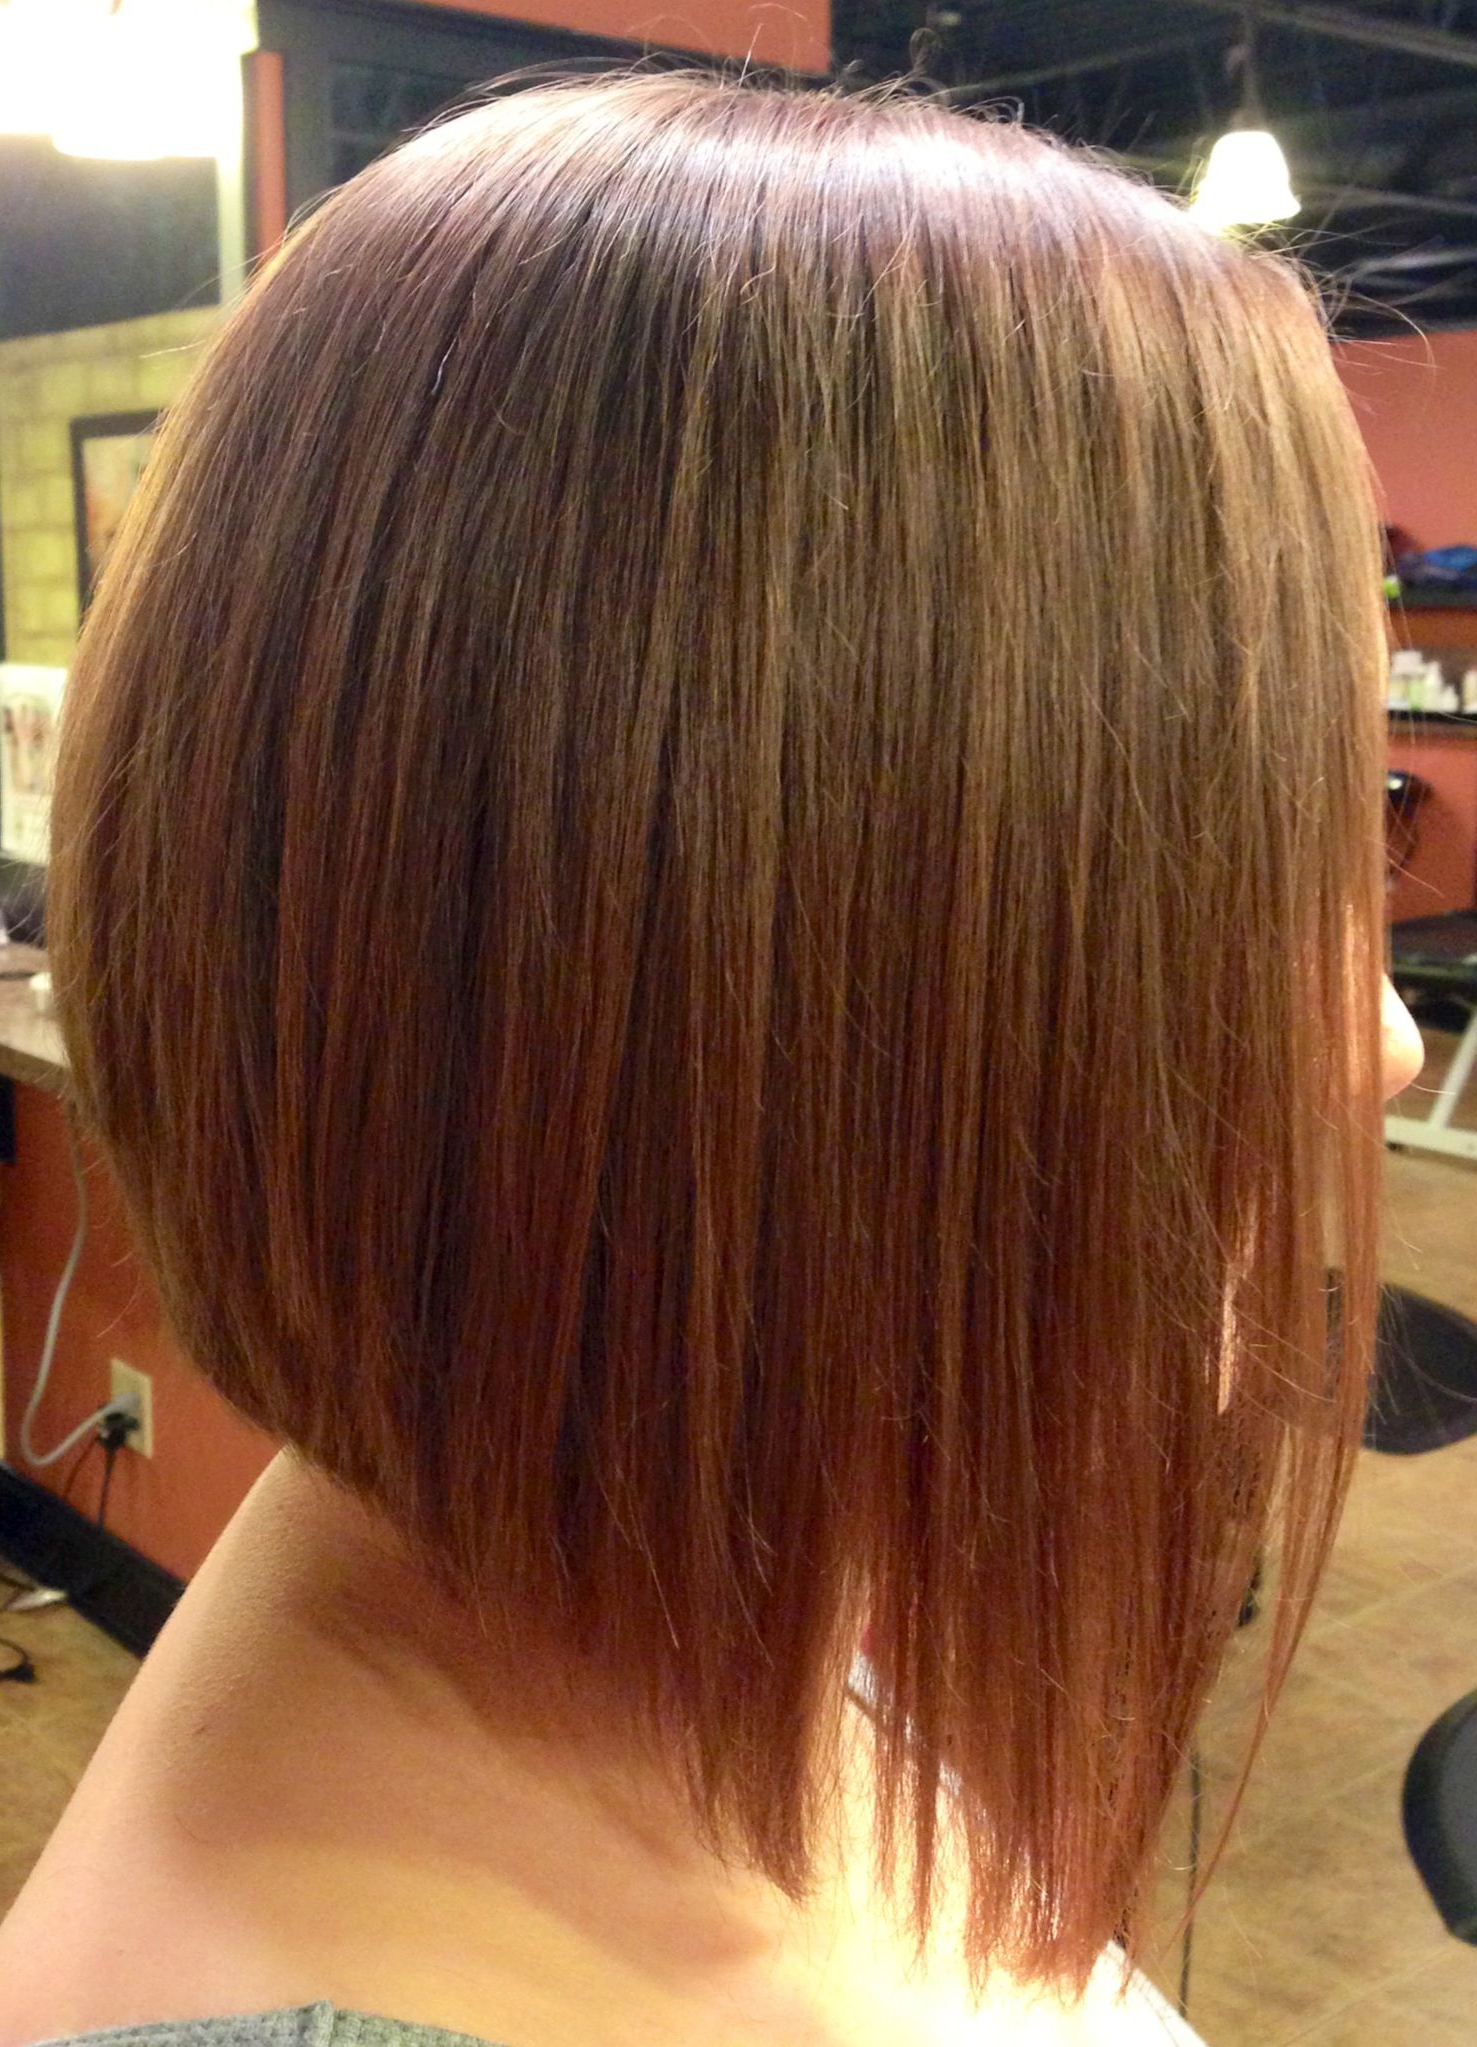 Latest Stacked Swing Bob Hairstyles Intended For Long Inverted Bob With A Dramatic Angle (View 9 of 20)